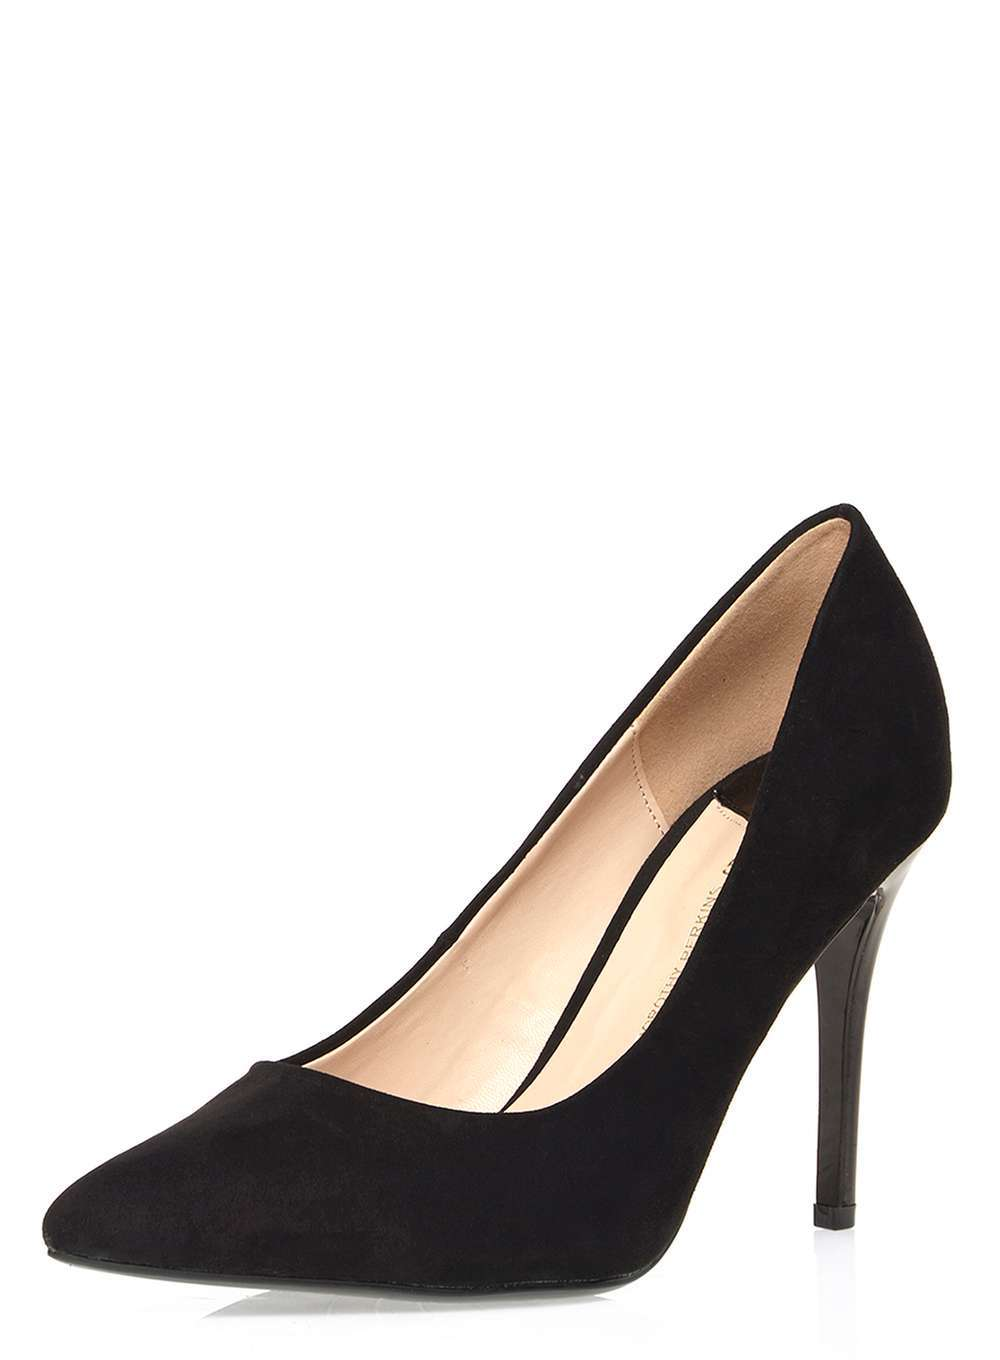 Womens Wide Fit Black 'wiggle' Court Shoes Black - predominant colour: black; occasions: evening, work, occasion; material: suede; heel height: high; heel: stiletto; toe: pointed toe; style: courts; finish: plain; pattern: plain; wardrobe: investment; season: a/w 2016